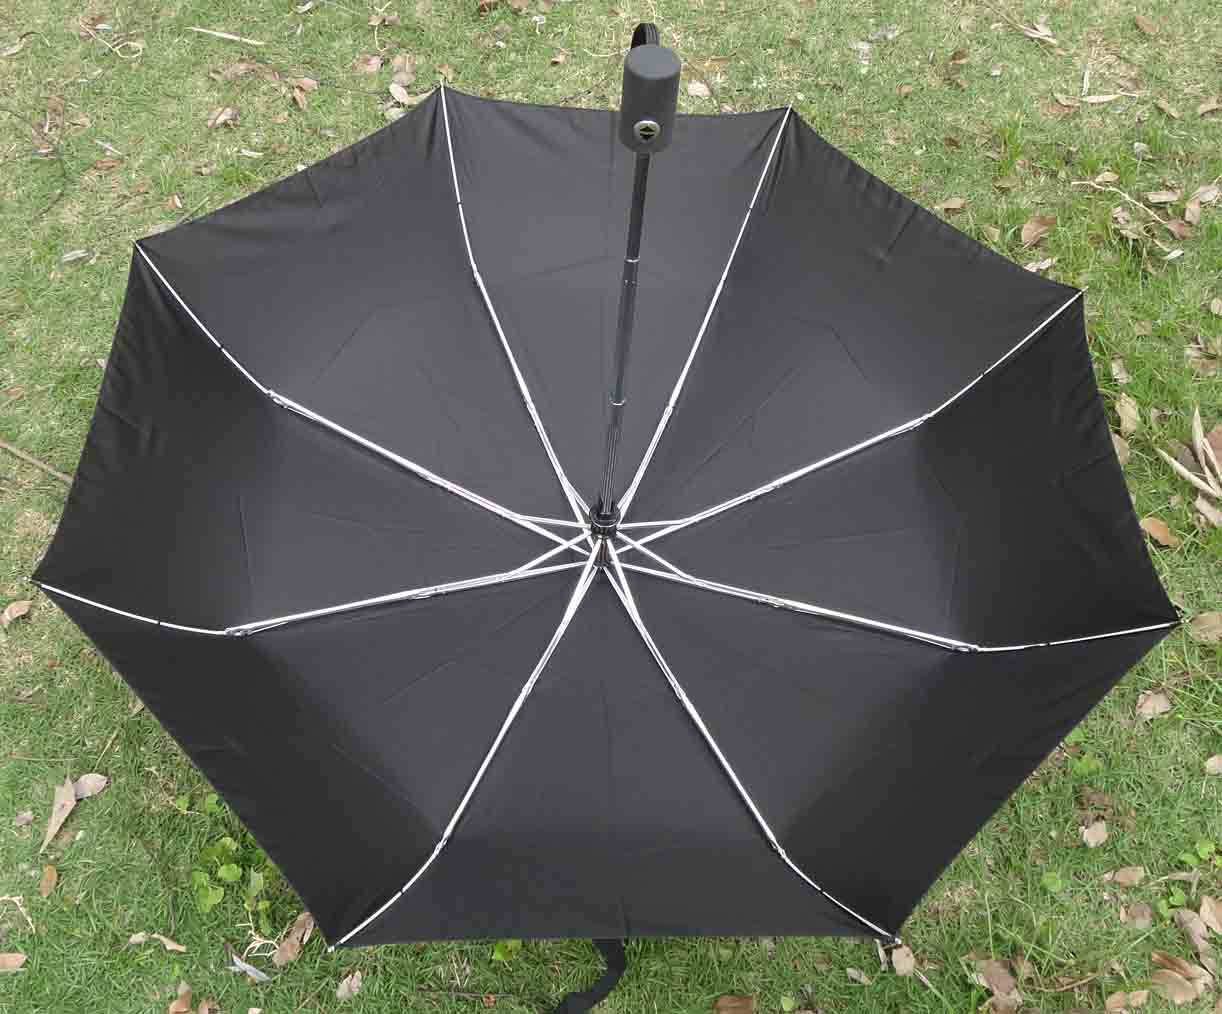 3-section umbrella-F3U028b